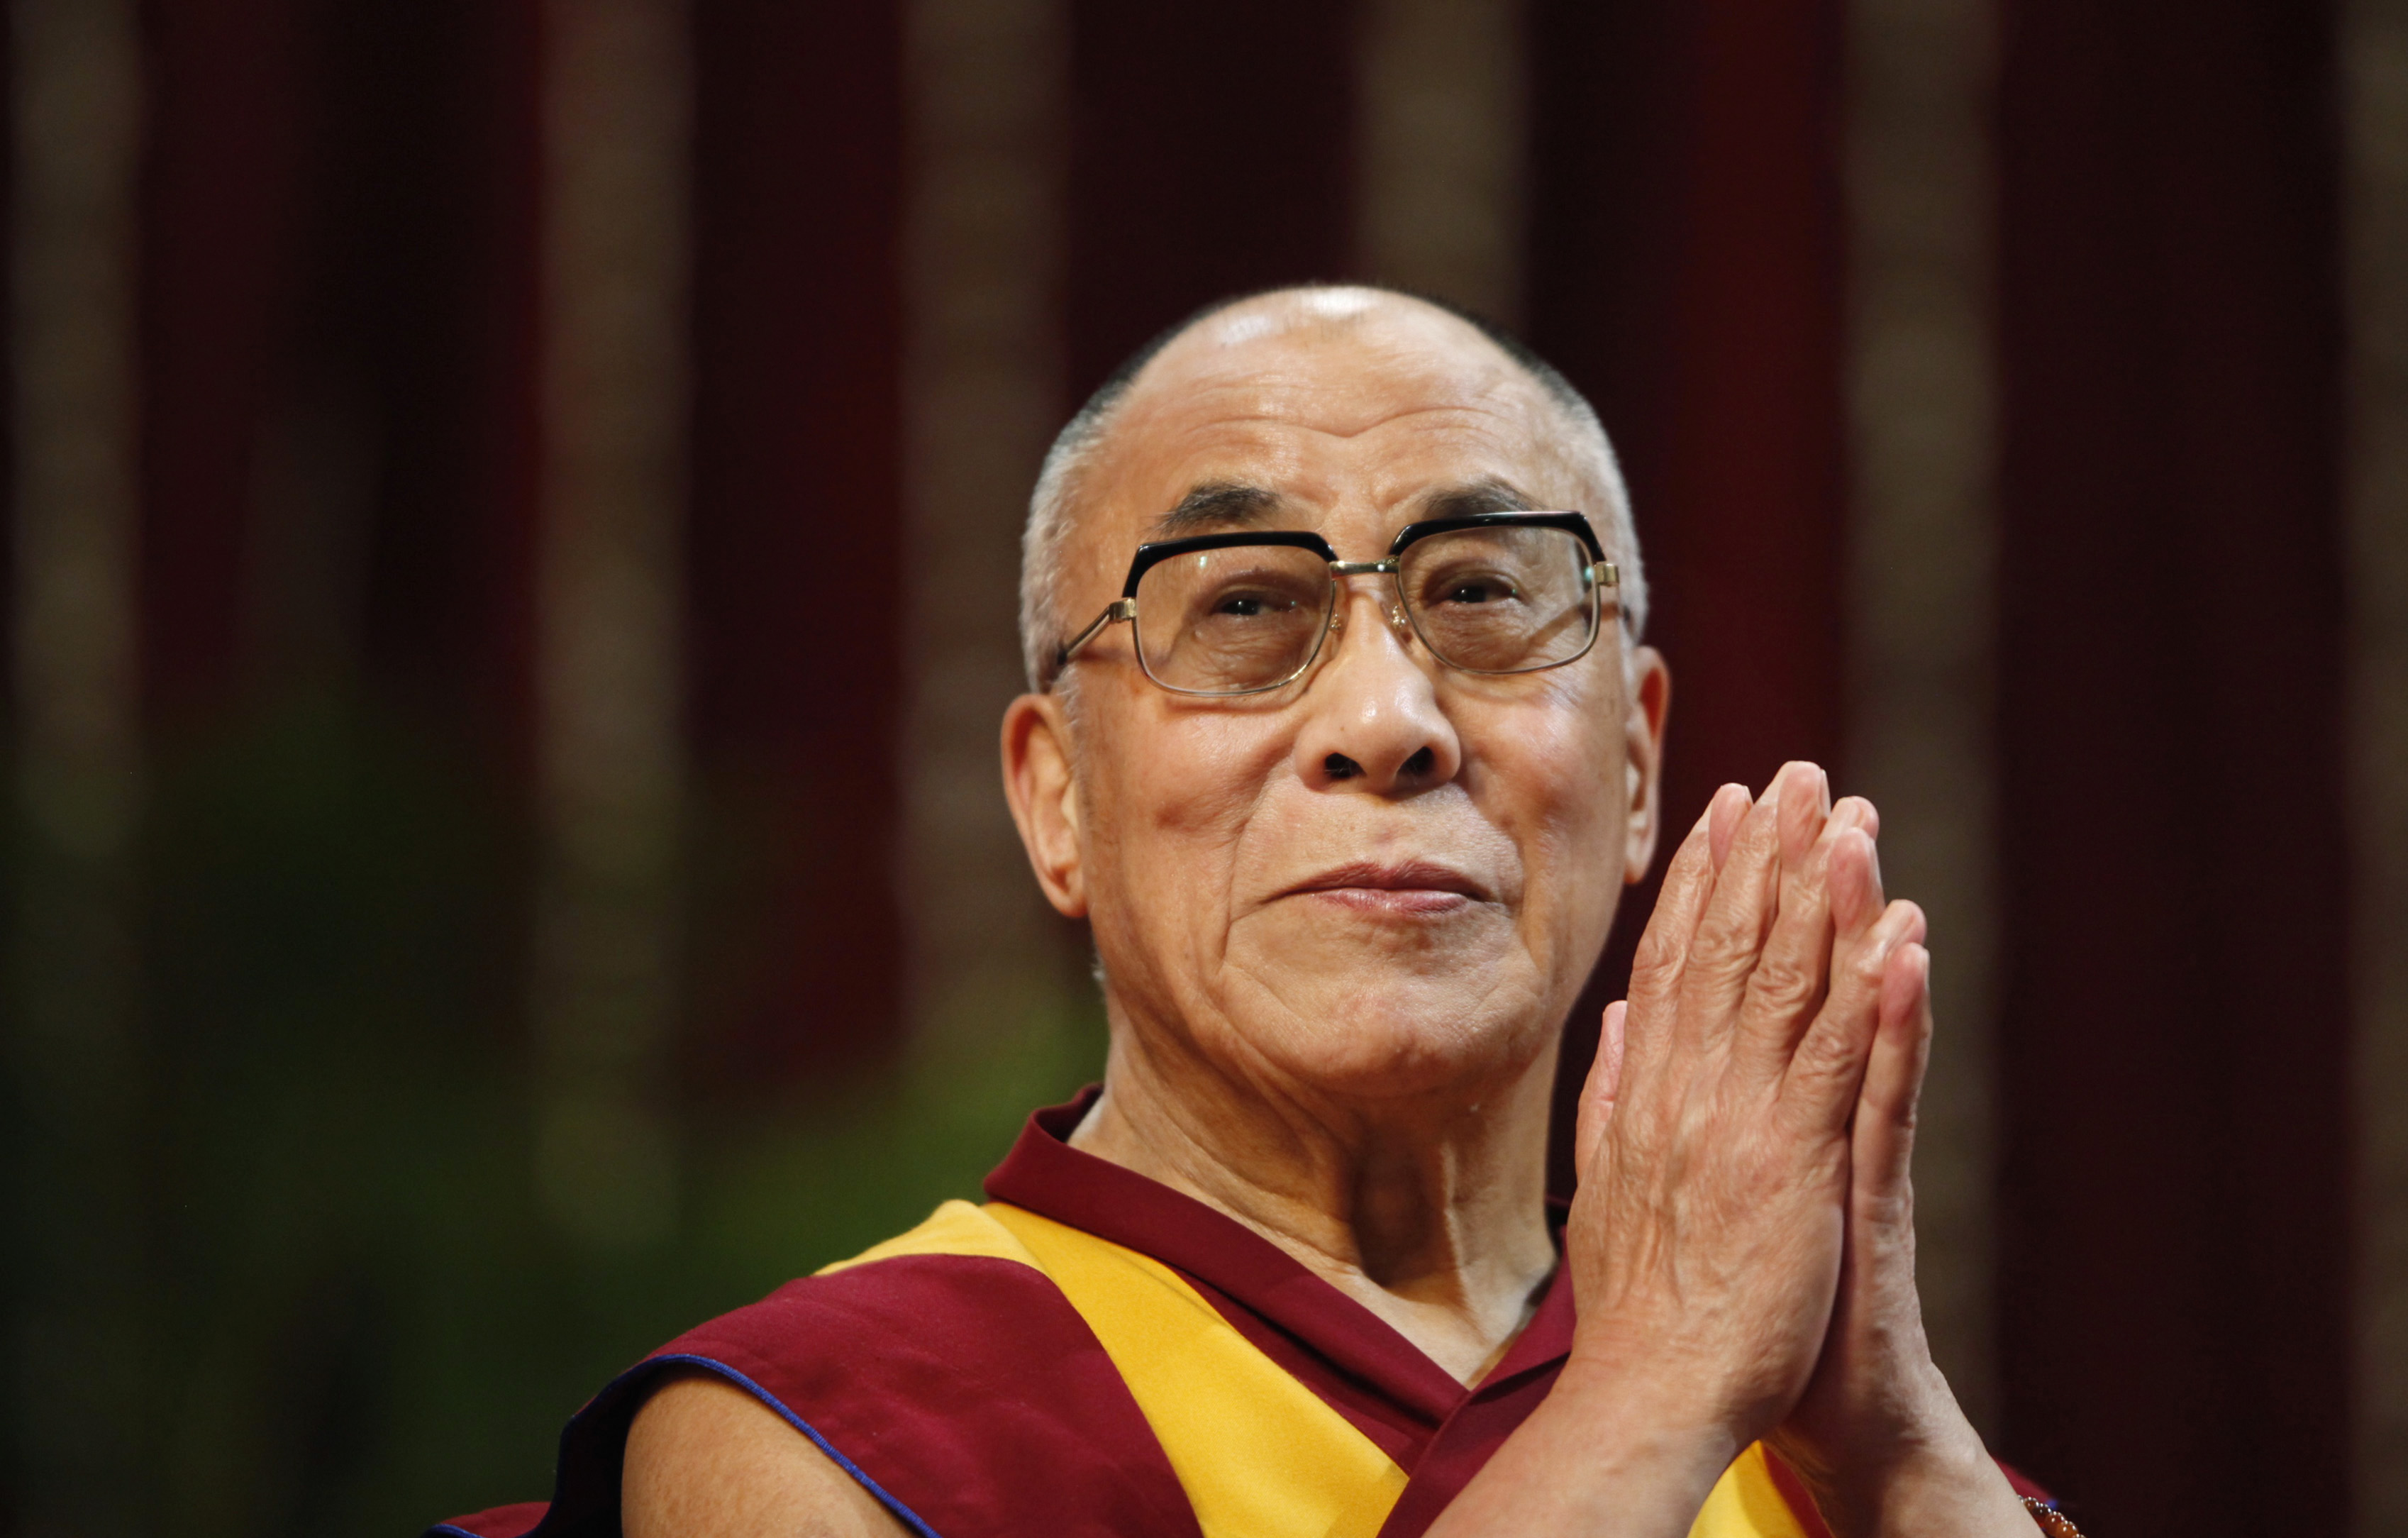 His Holiness the 14th Dalai Lama, please speak out against the brutal dog meat trade.